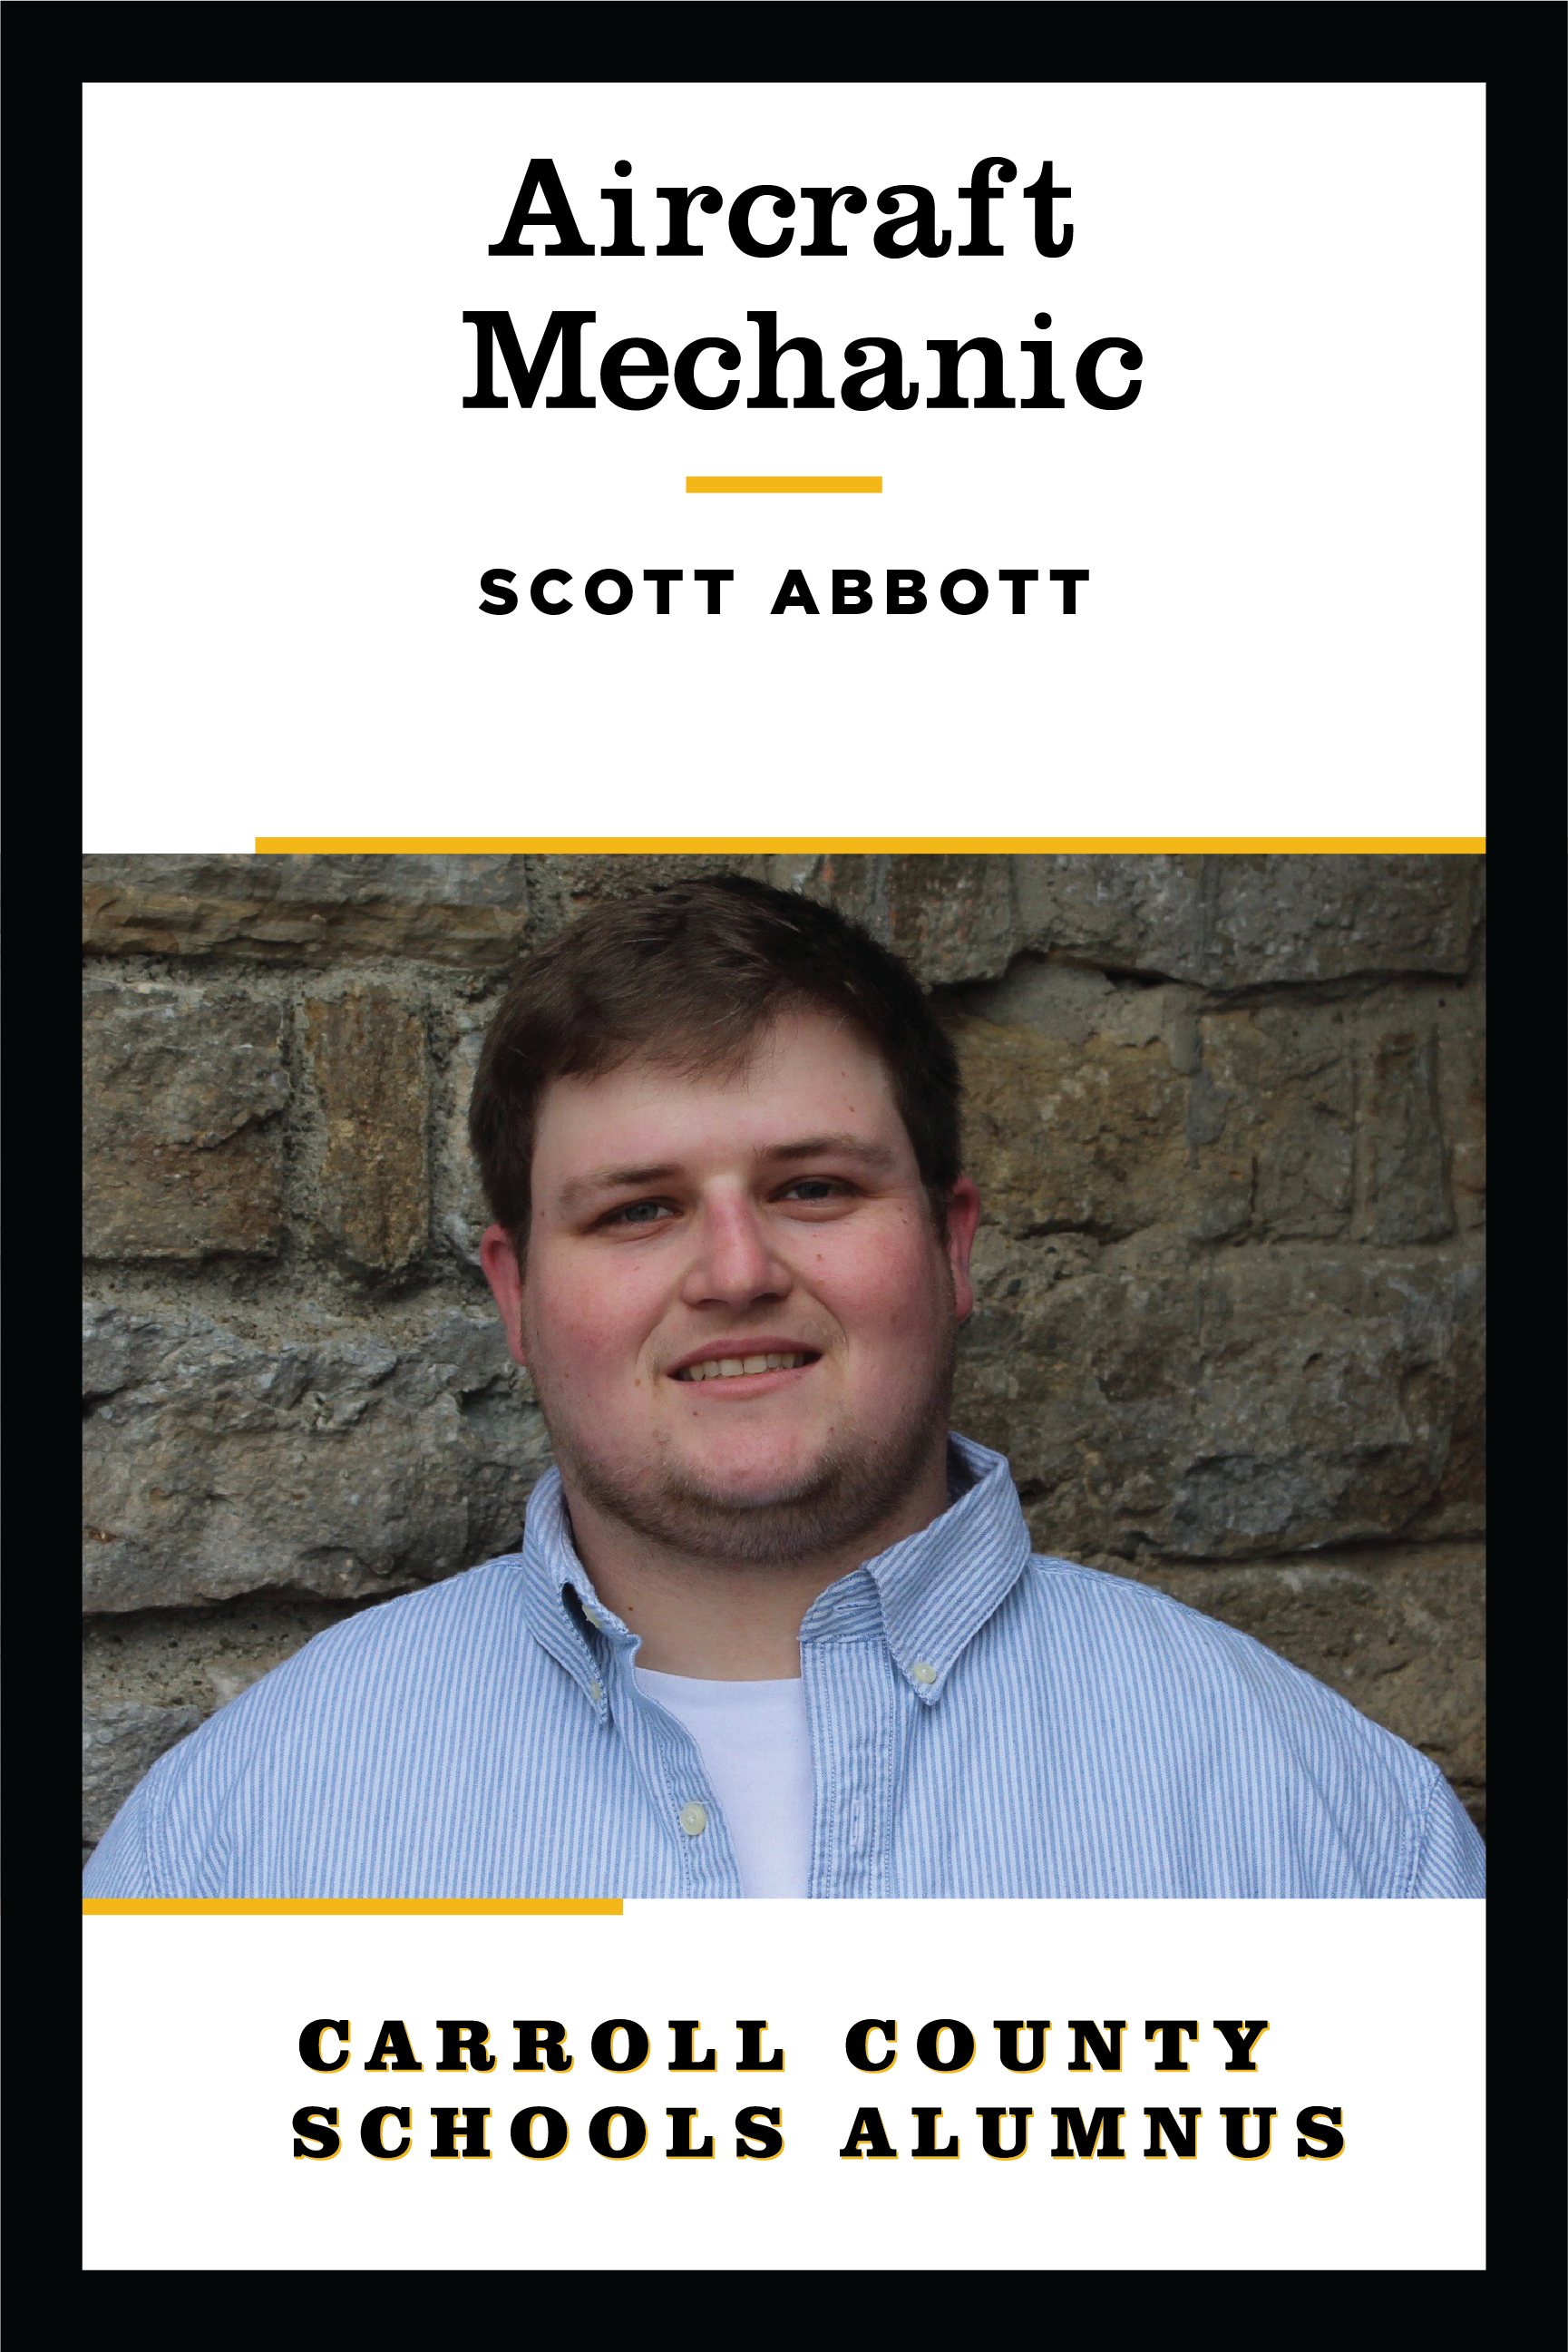 poster of CCSD alumnus Scott Abbott